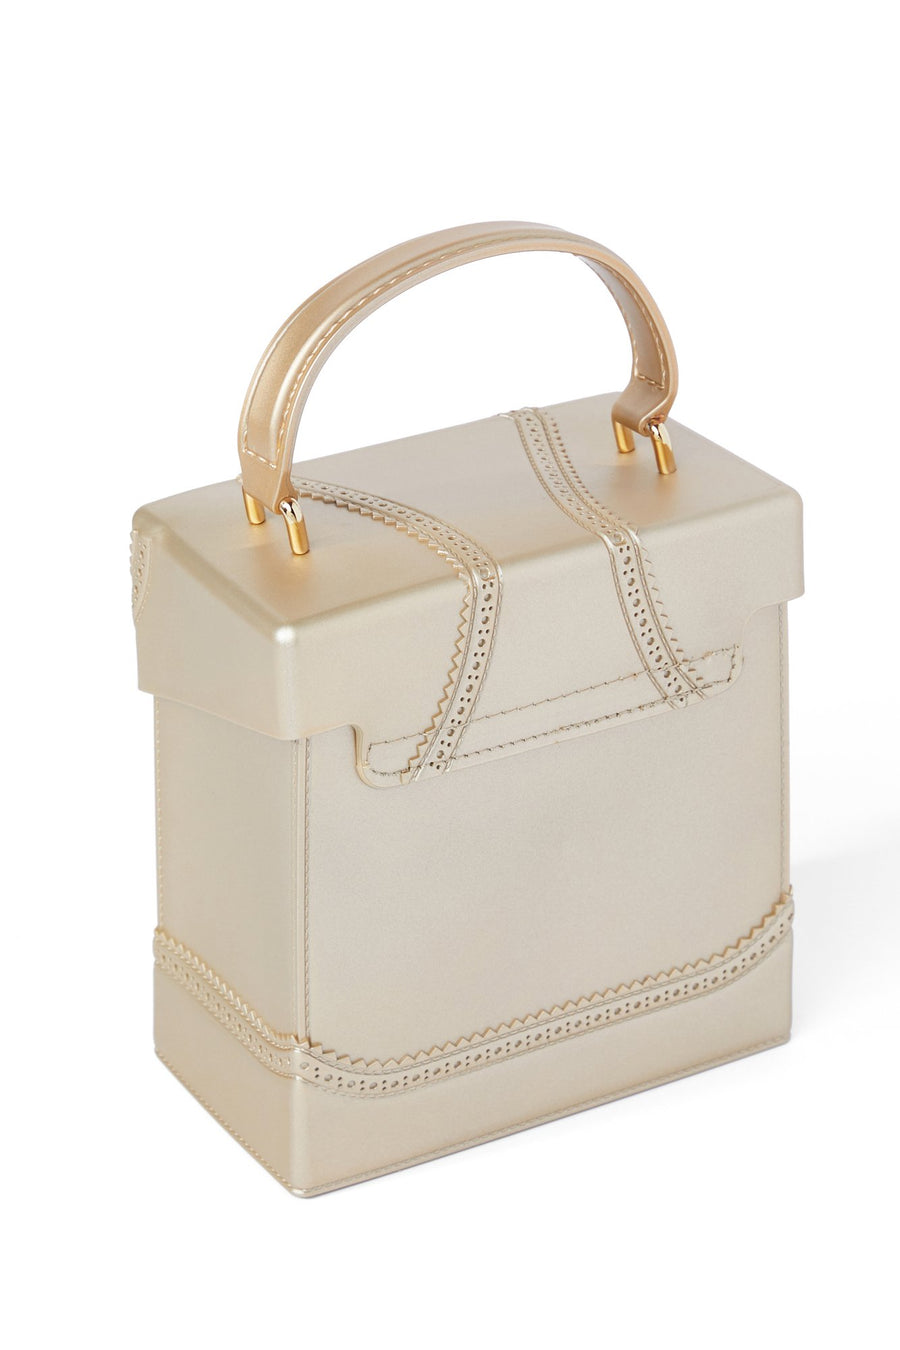 Outside The Box Bag - Gold